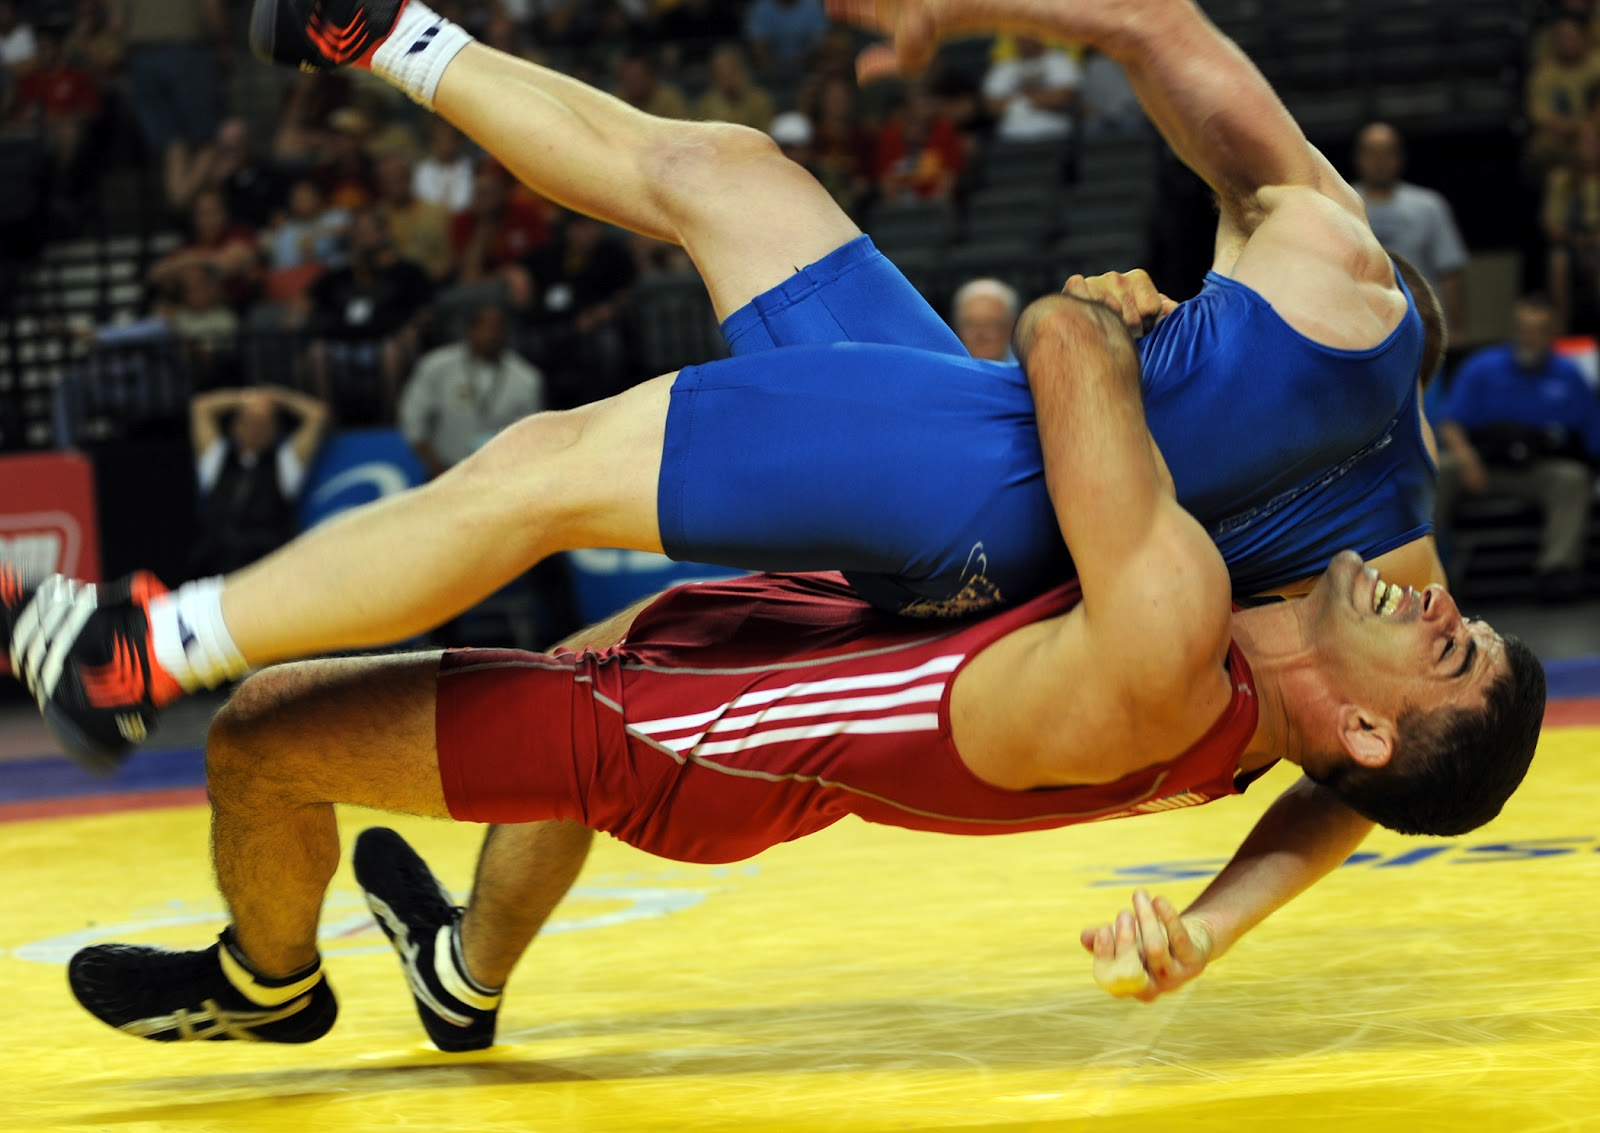 Funny Wallpapers Usa wrestling olympic wrestling wrestling matcom 1600x1133